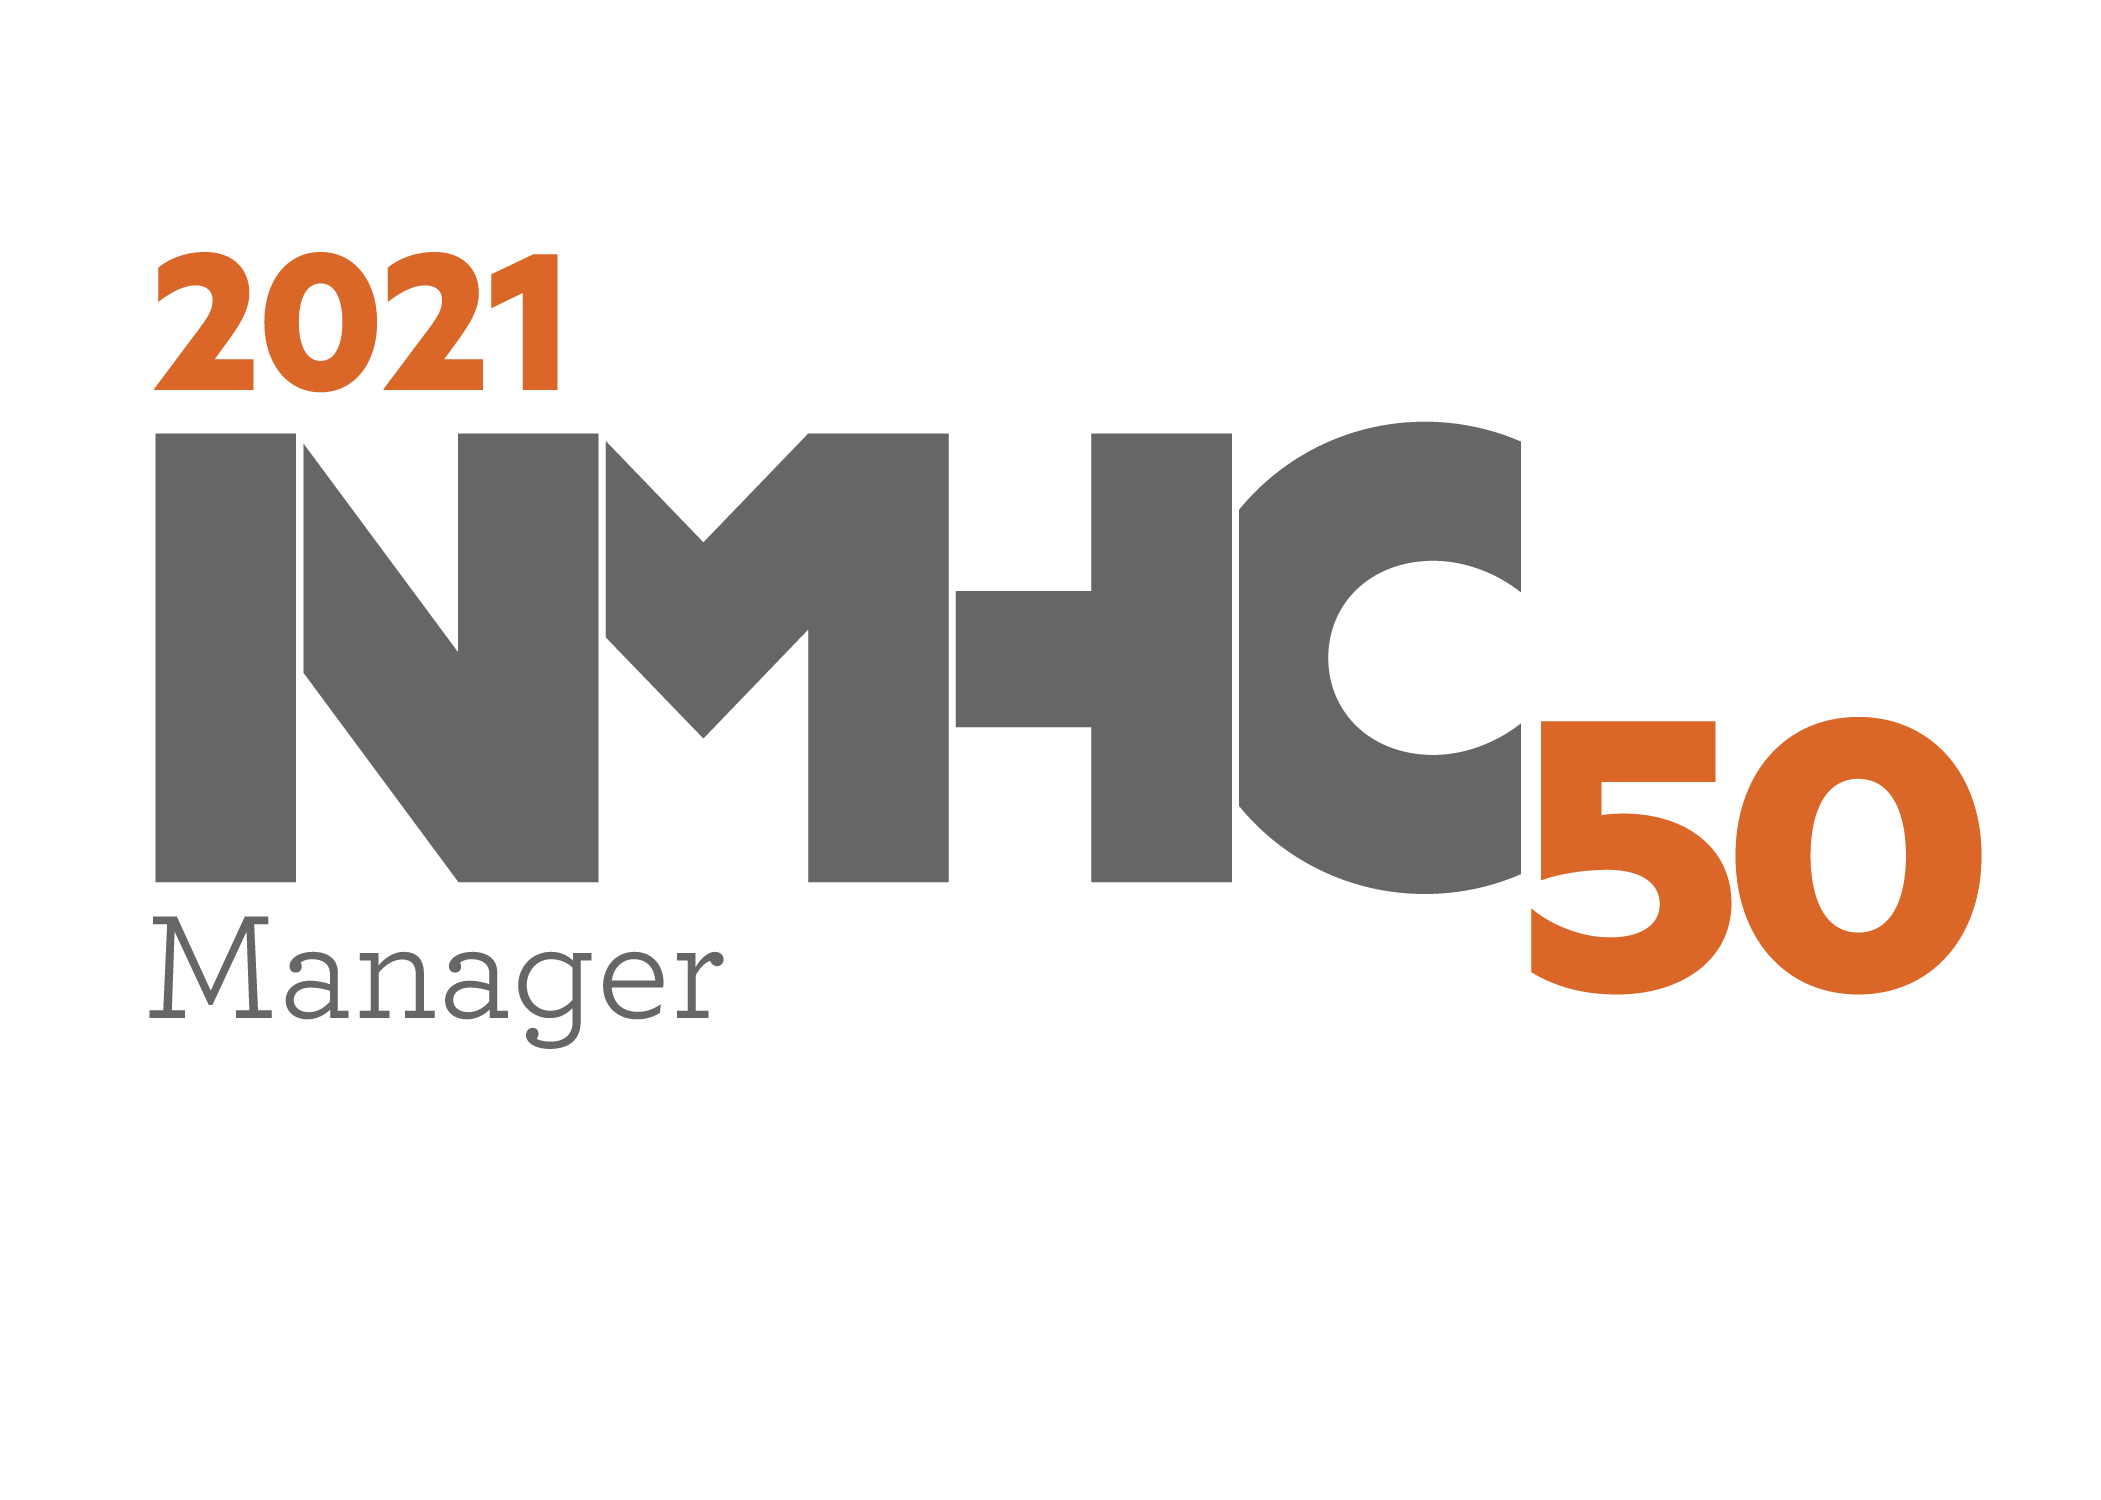 NMHC50 Badge Managers Website Badge